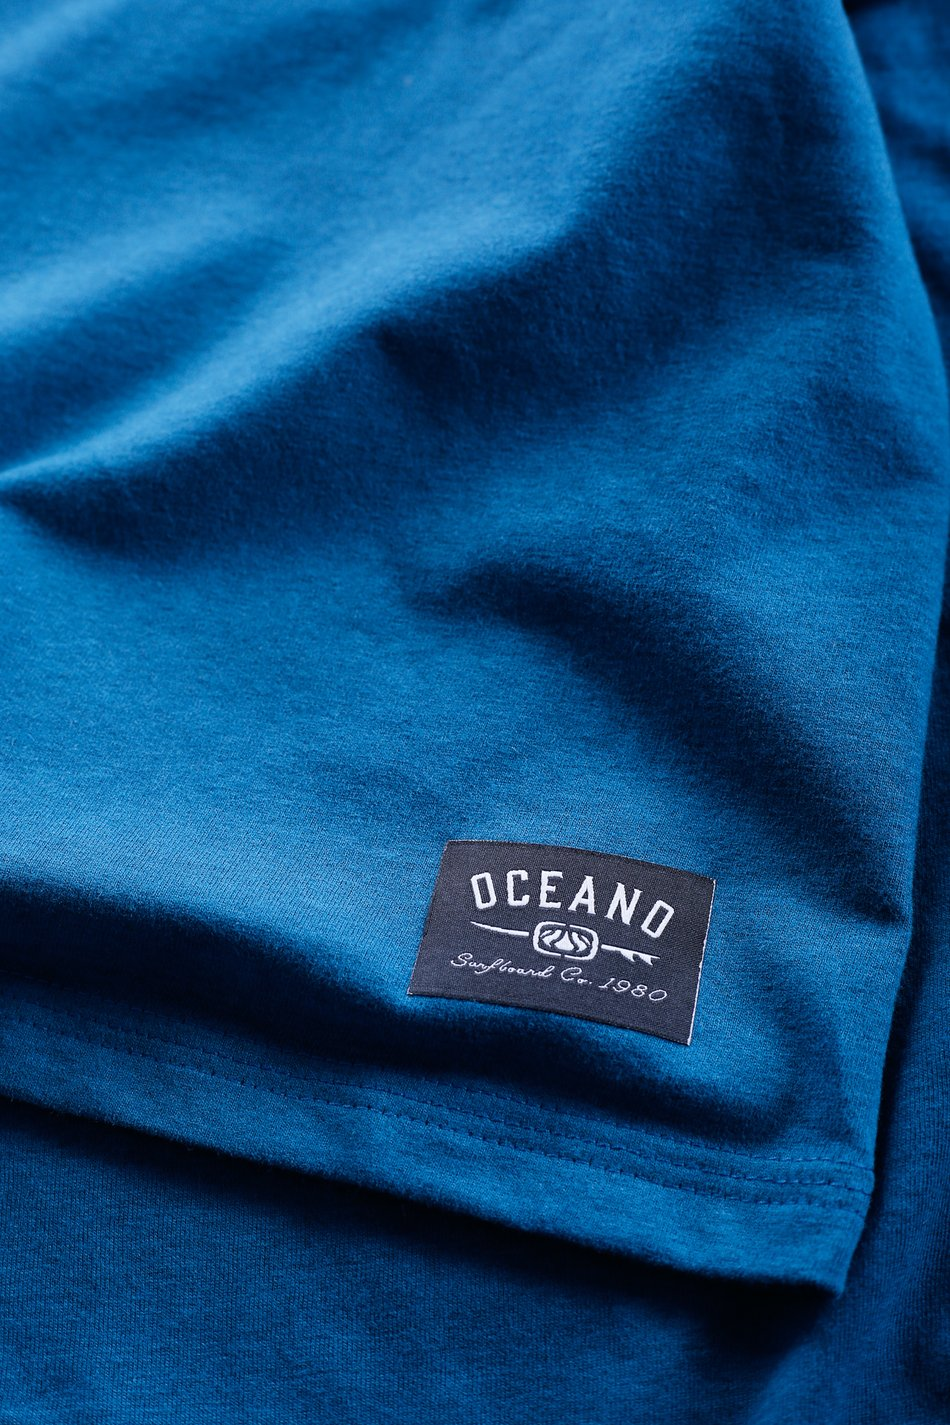 CAMISETA OCEANO 1980 MESCLA COLOR